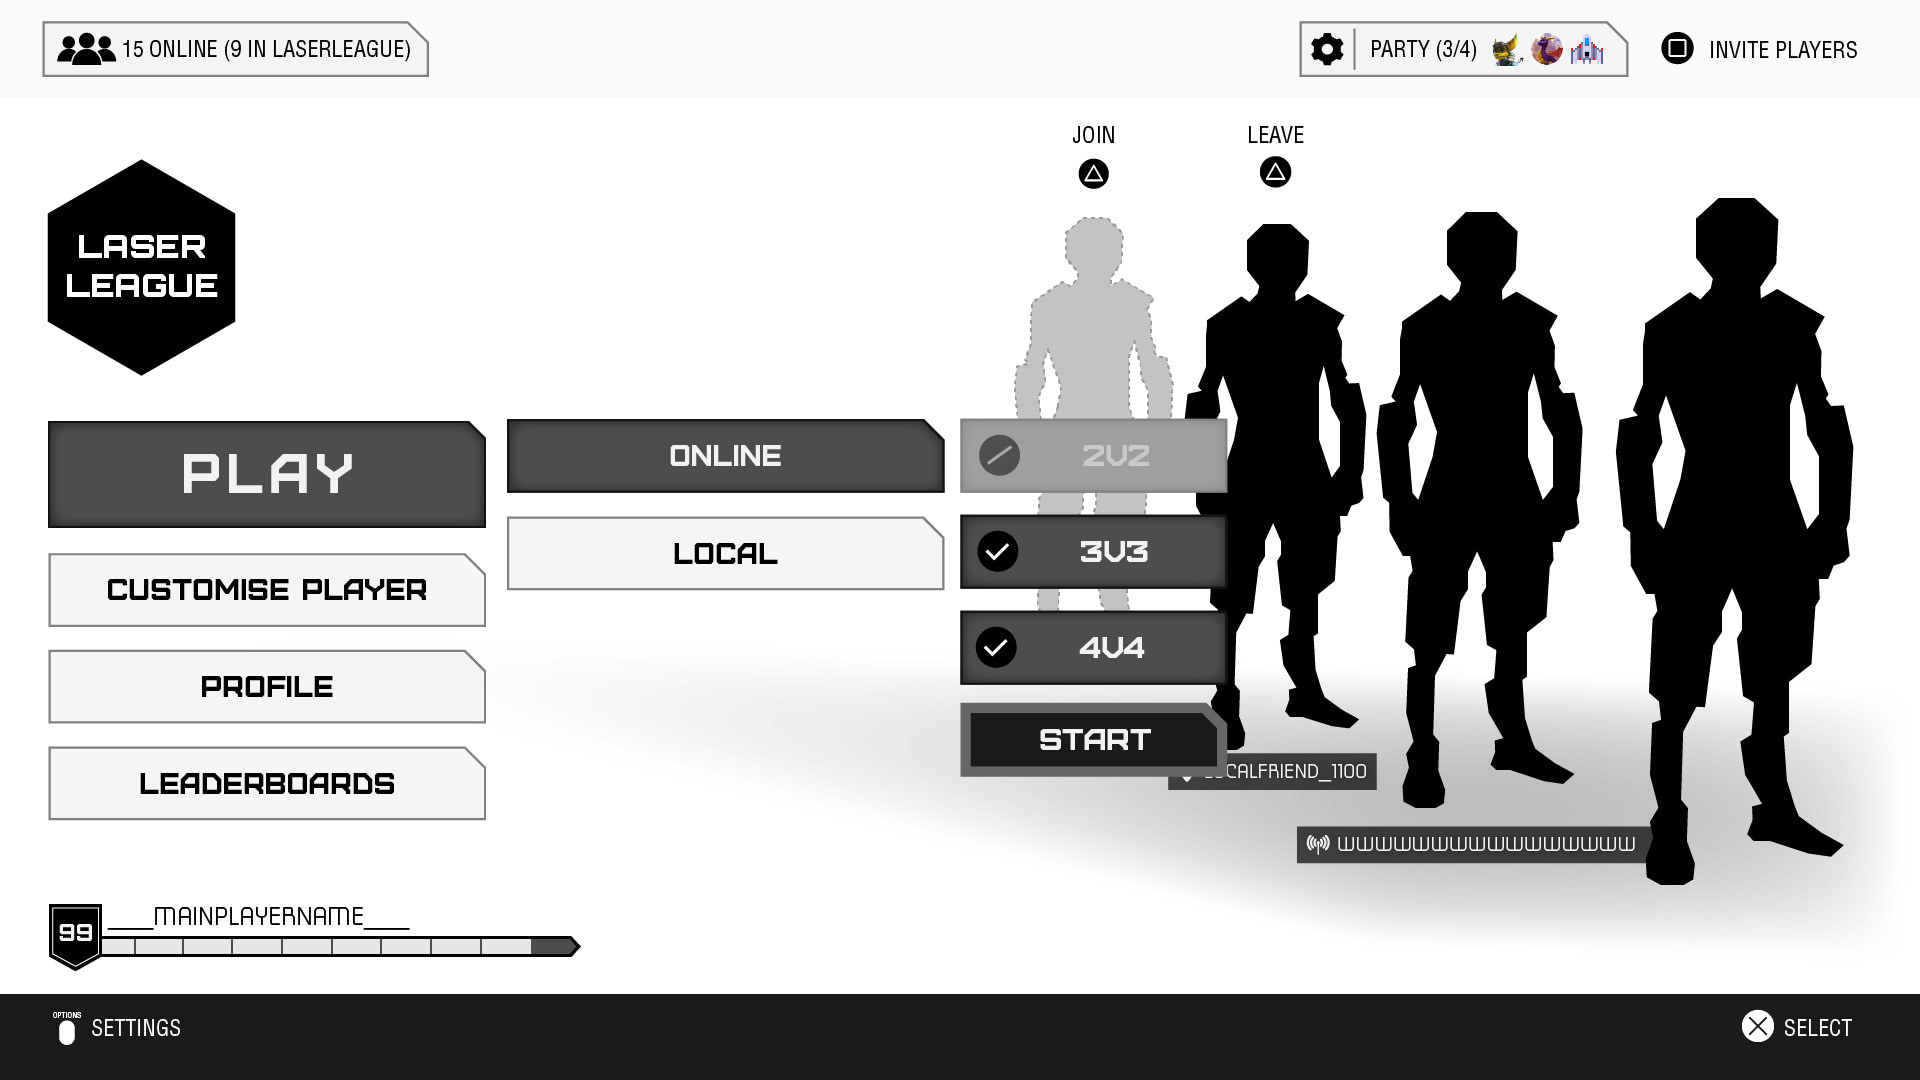 Laser League wireframe example for team size play online